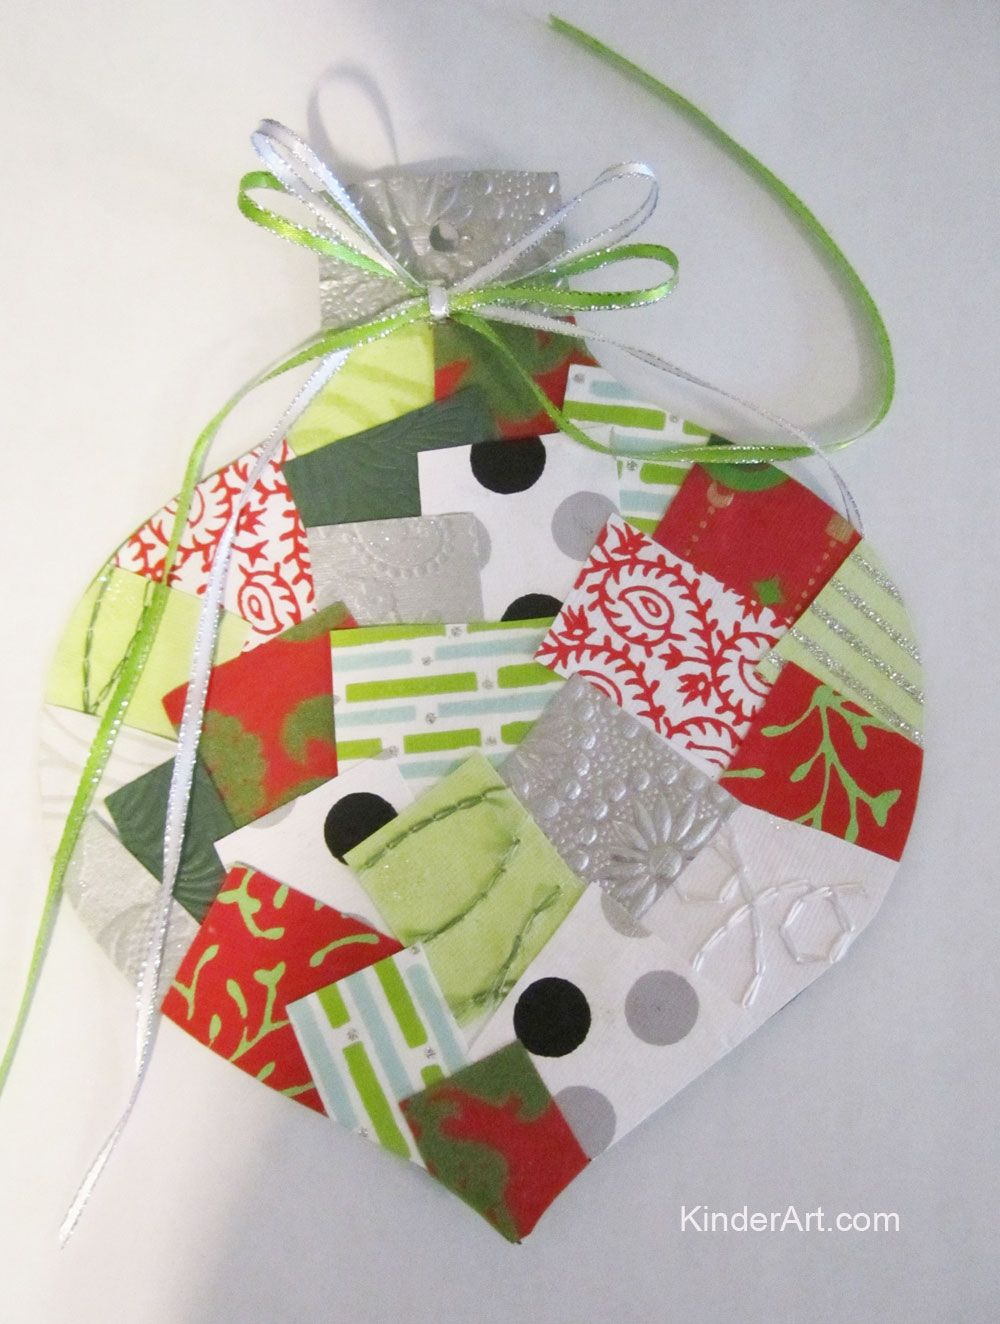 Paper Ornament Collage Kinderart Com Preschool Christmas Ornaments Christmas Paper Crafts Wrapping Paper Crafts